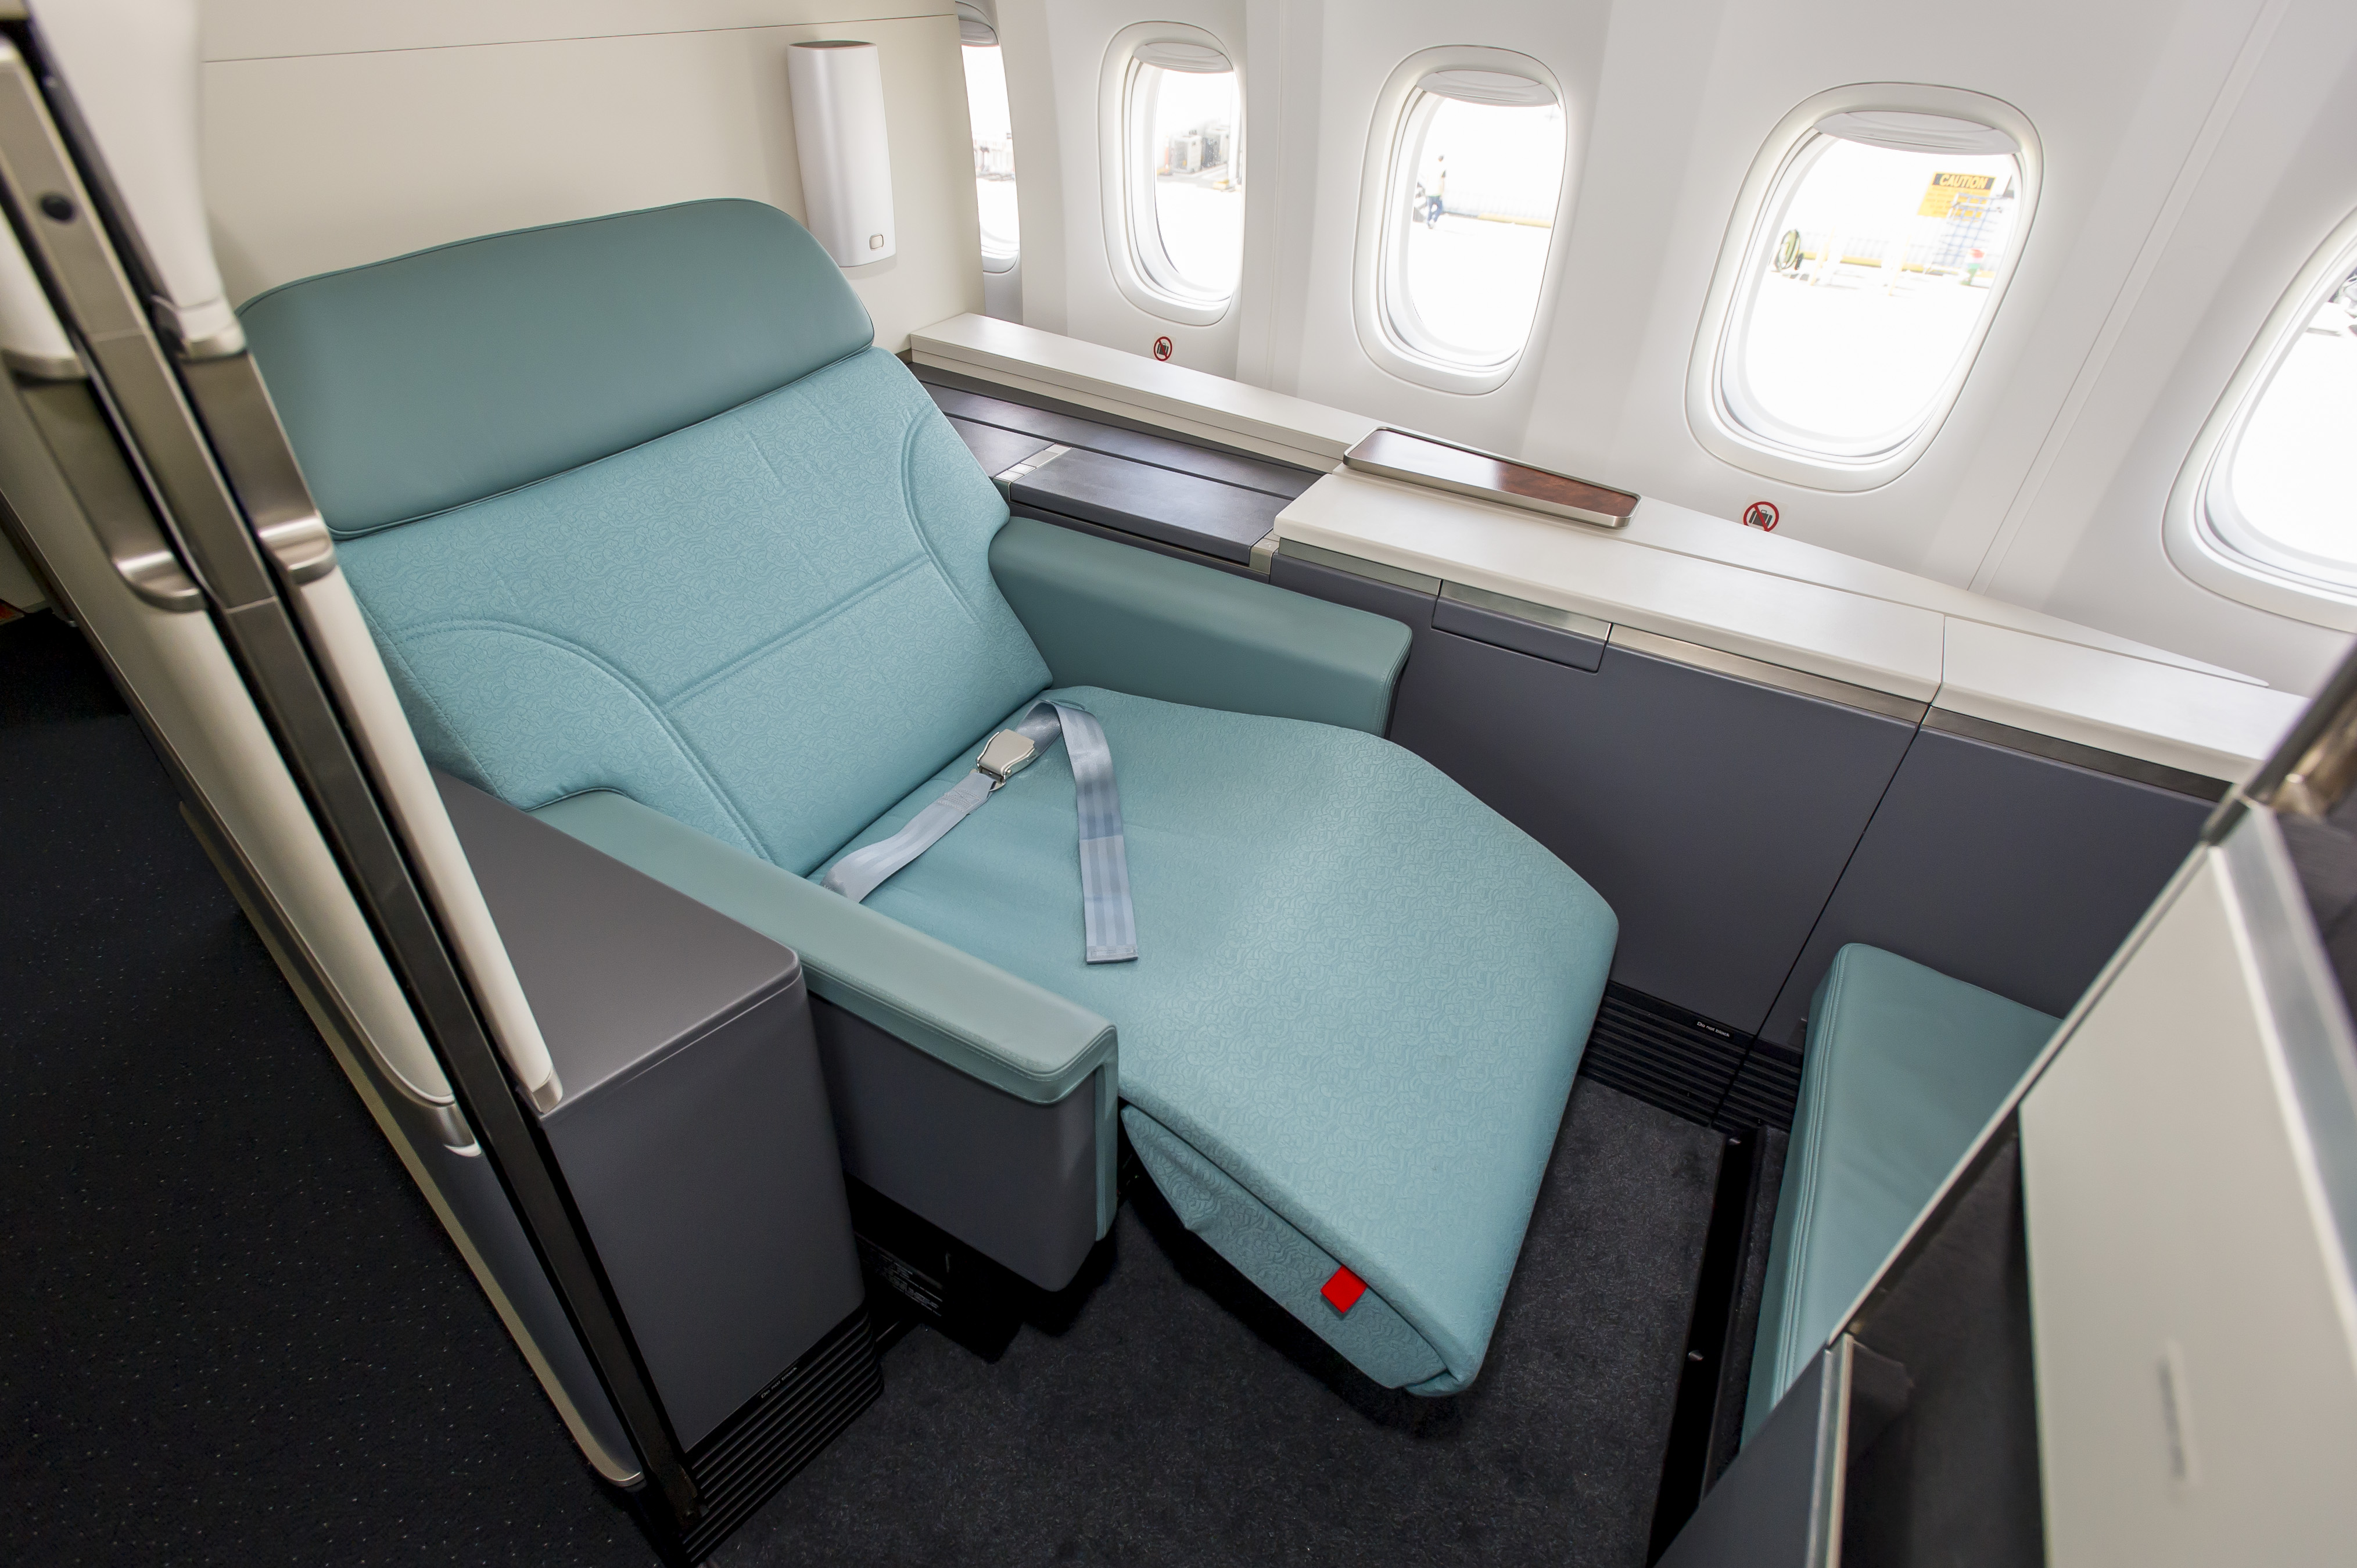 Korean Air's New 747-8i Offers New Flagship Seating | TheDesignAir on korean airbus a380-800 interior, airbus a380 interior map, united 767-300 seat map, airbus a380-800 seat map, allegiant air 757 seat map, korean air seat map, airbus a330 seat map, ana 767-300 seat map, emirates flight seat map, united boeing 757 300 seat map, aer lingus a330 seat map, korean b747-8 seat map,